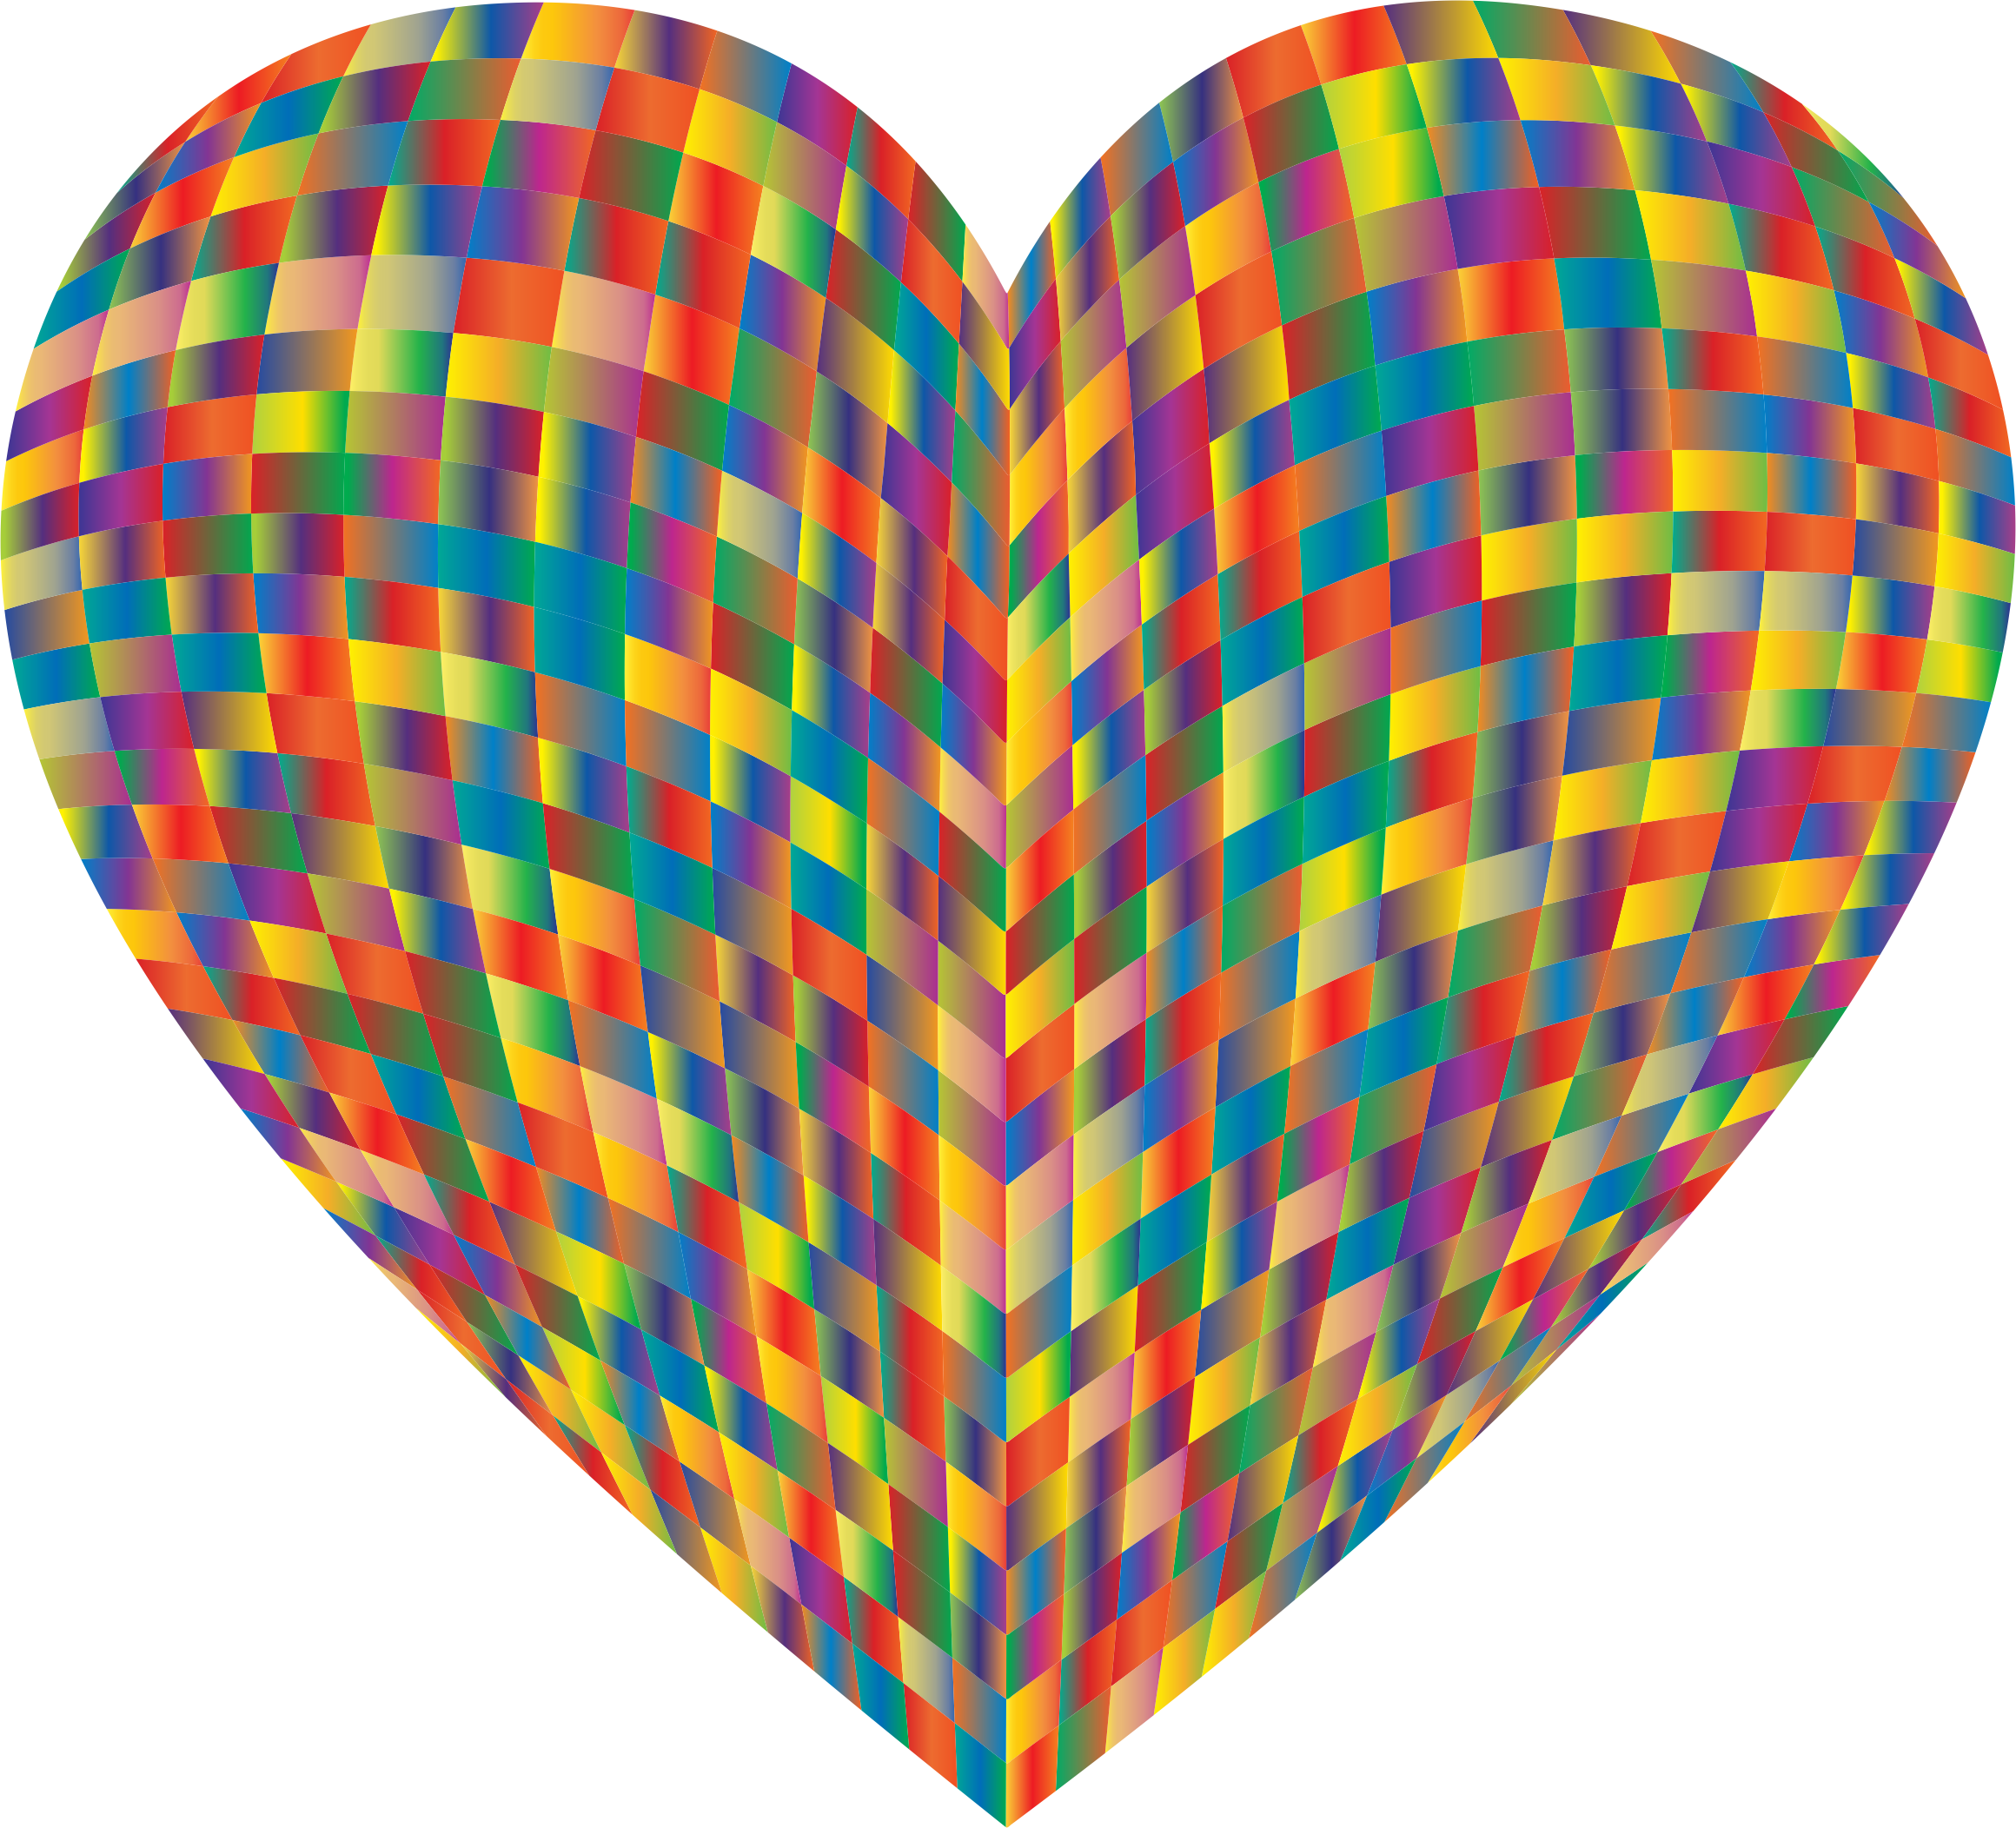 3D Prismatic Grid Heart 2 by GDJ